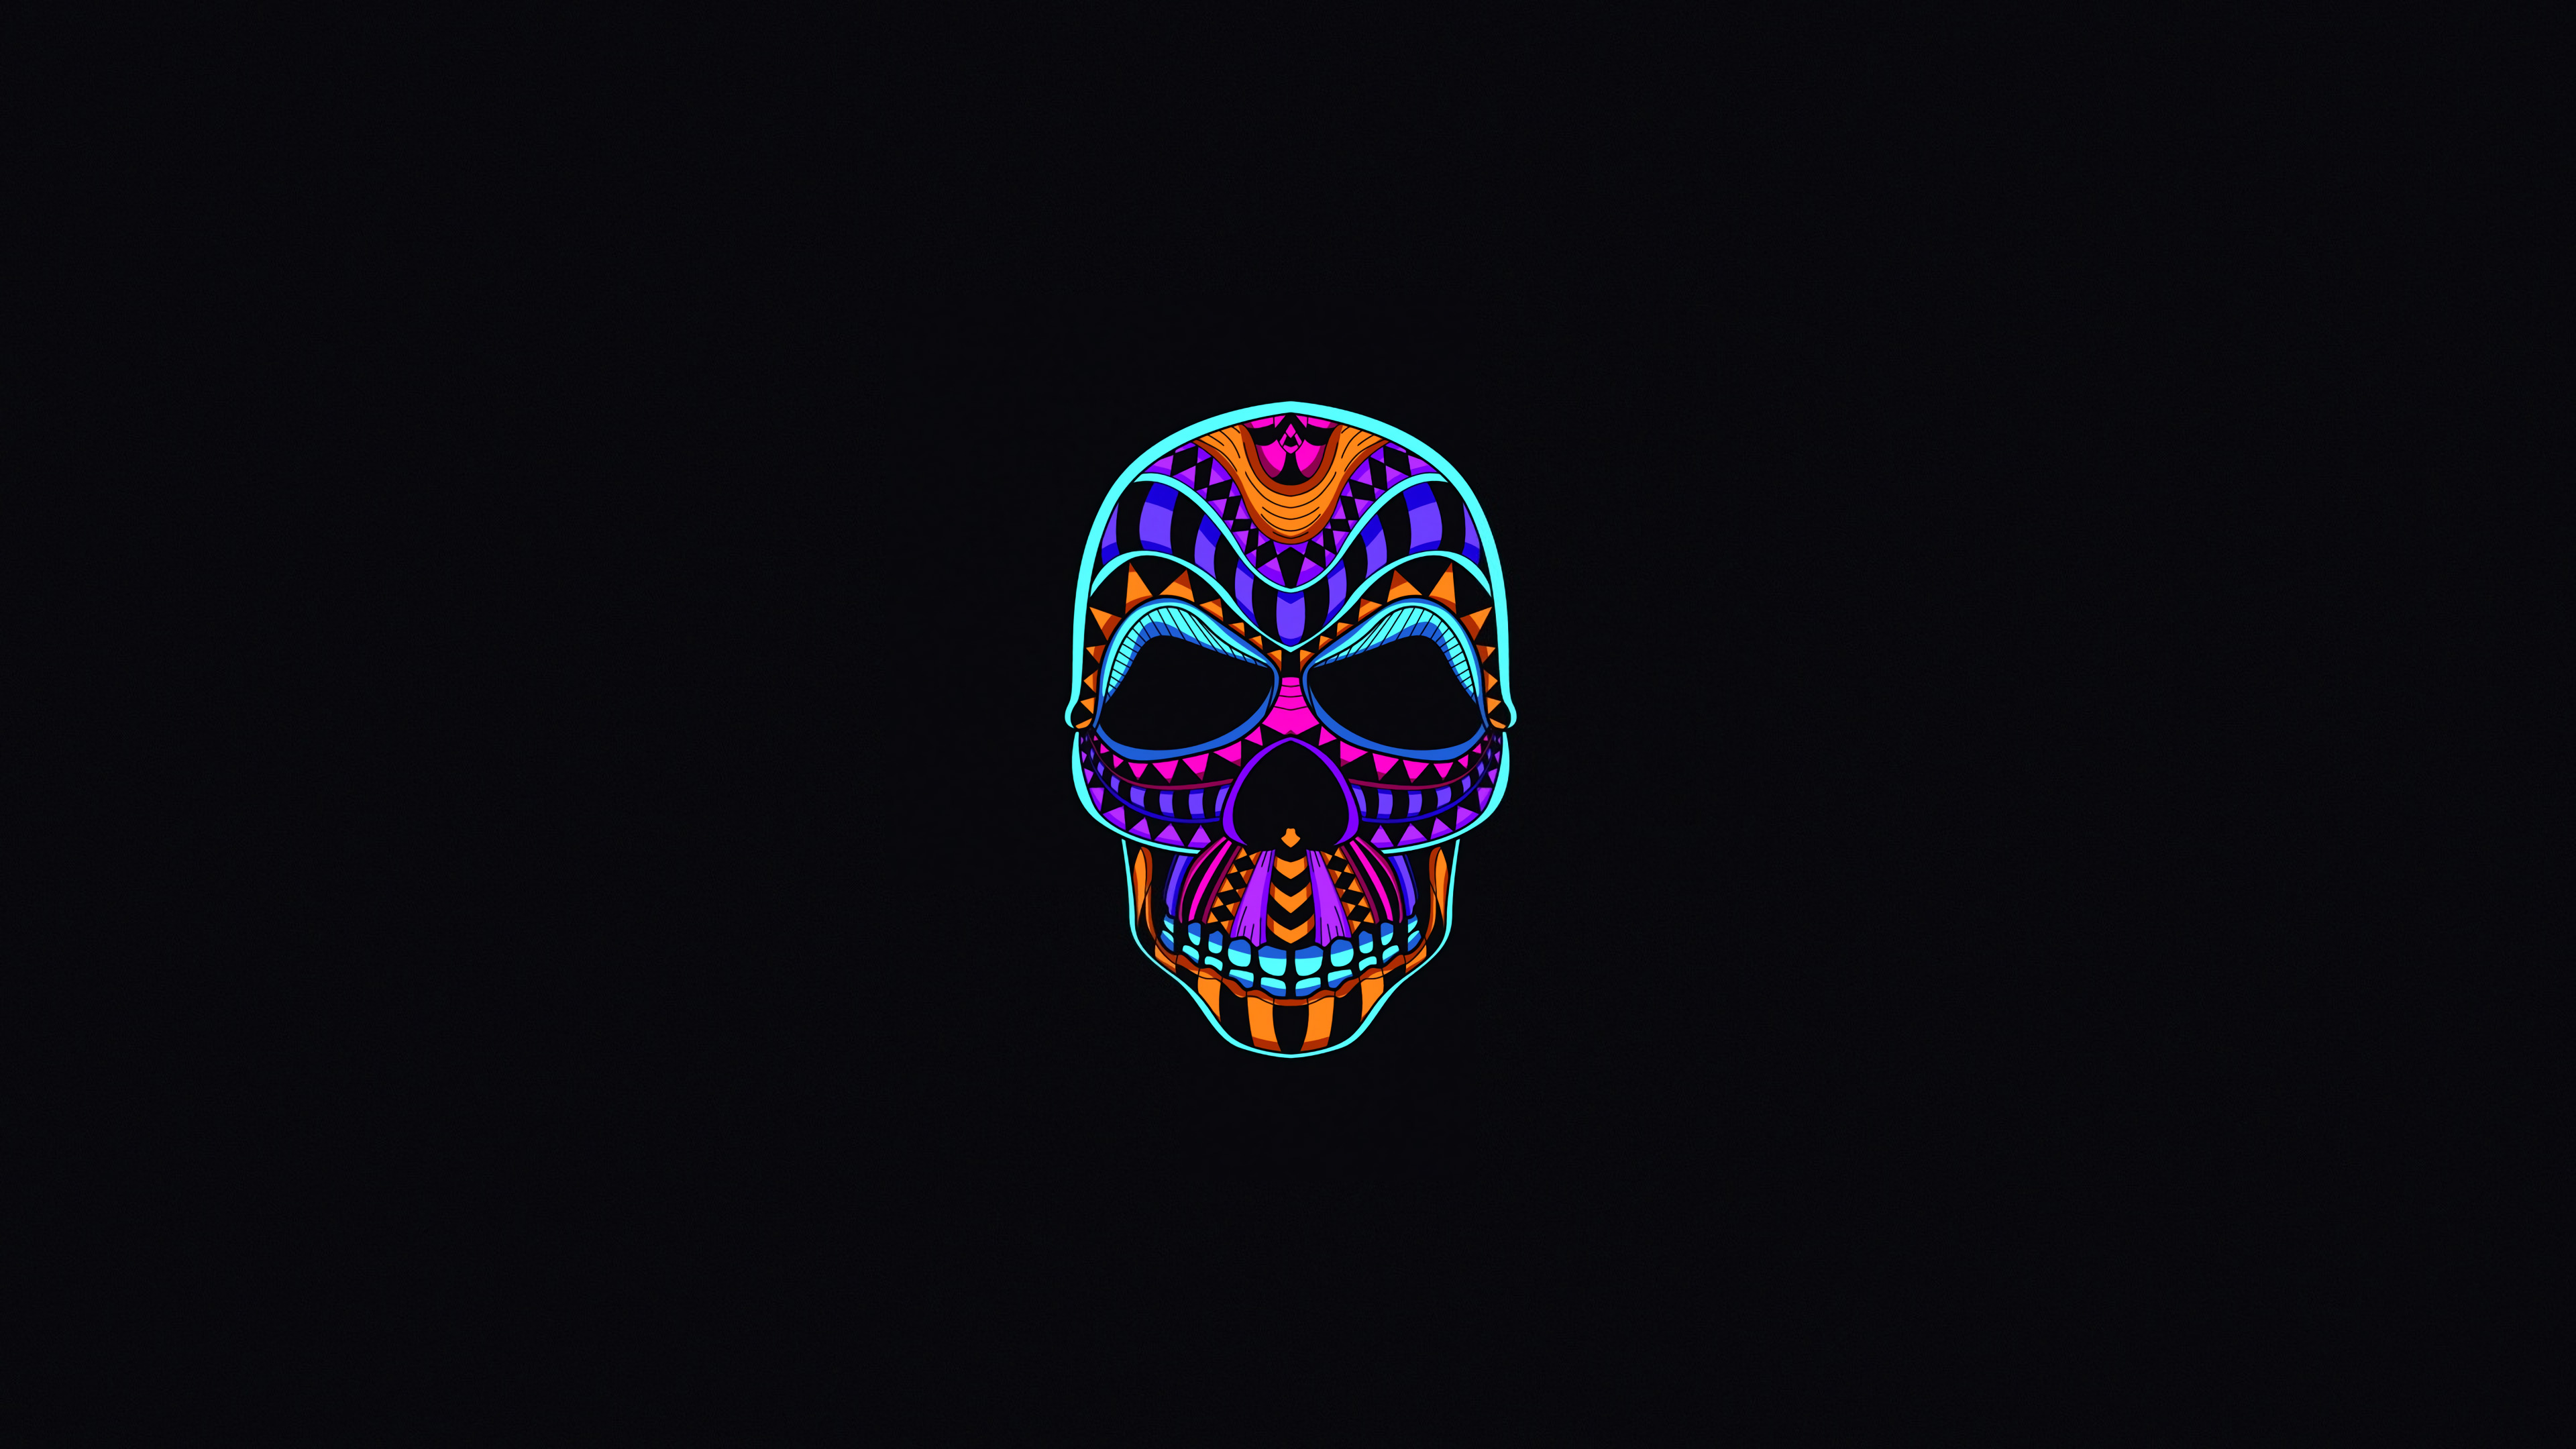 1366x768 Skull Dark Minimal 4k 1366x768 Resolution Hd 4k Wallpapers Images Backgrounds Photos And Pictures